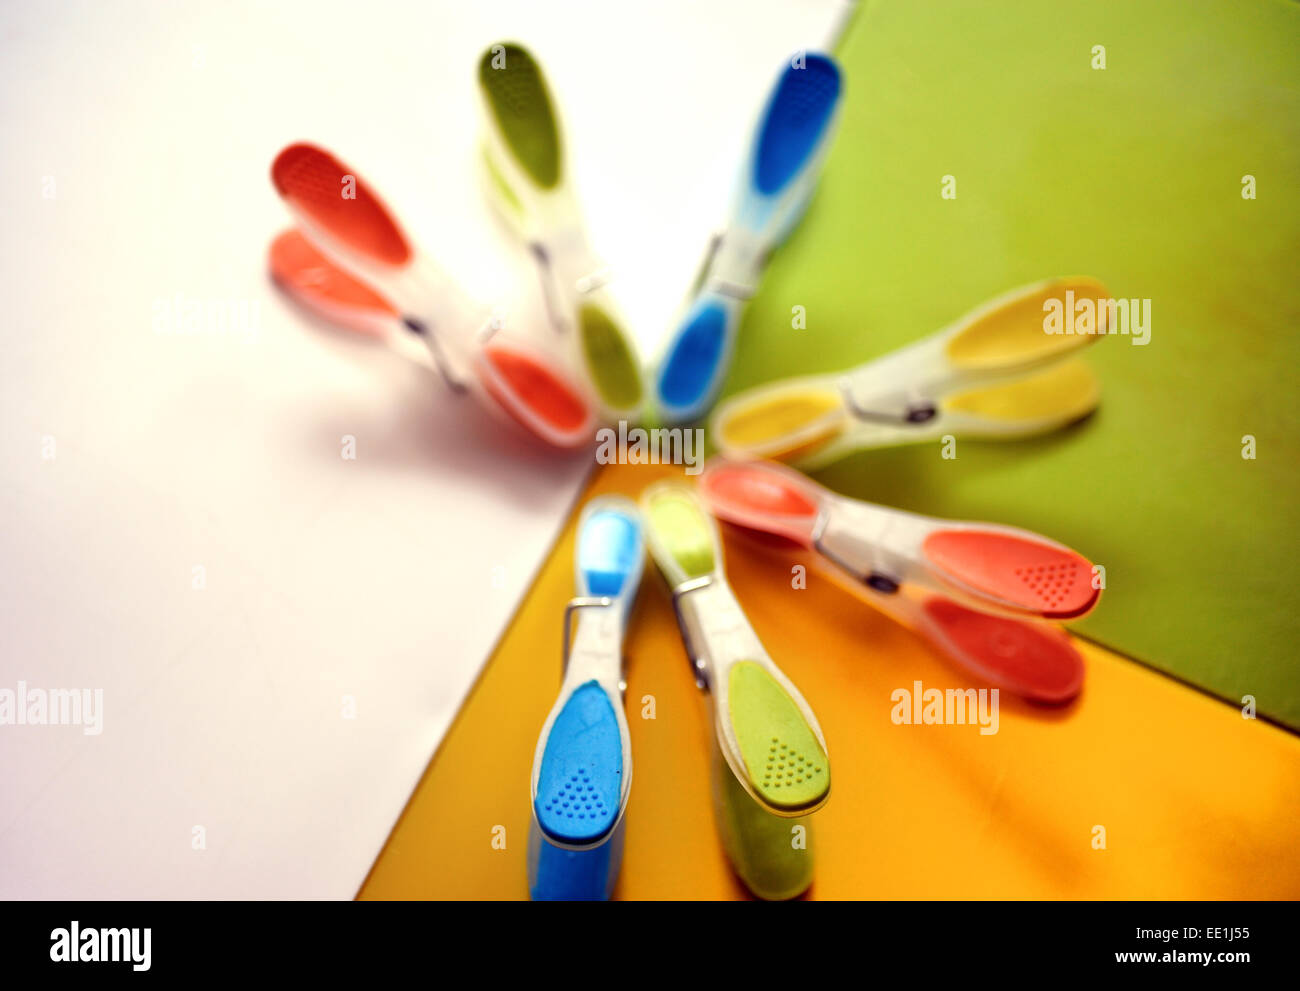 Clothes pegs arranged in an incomplete circle - Stock Image